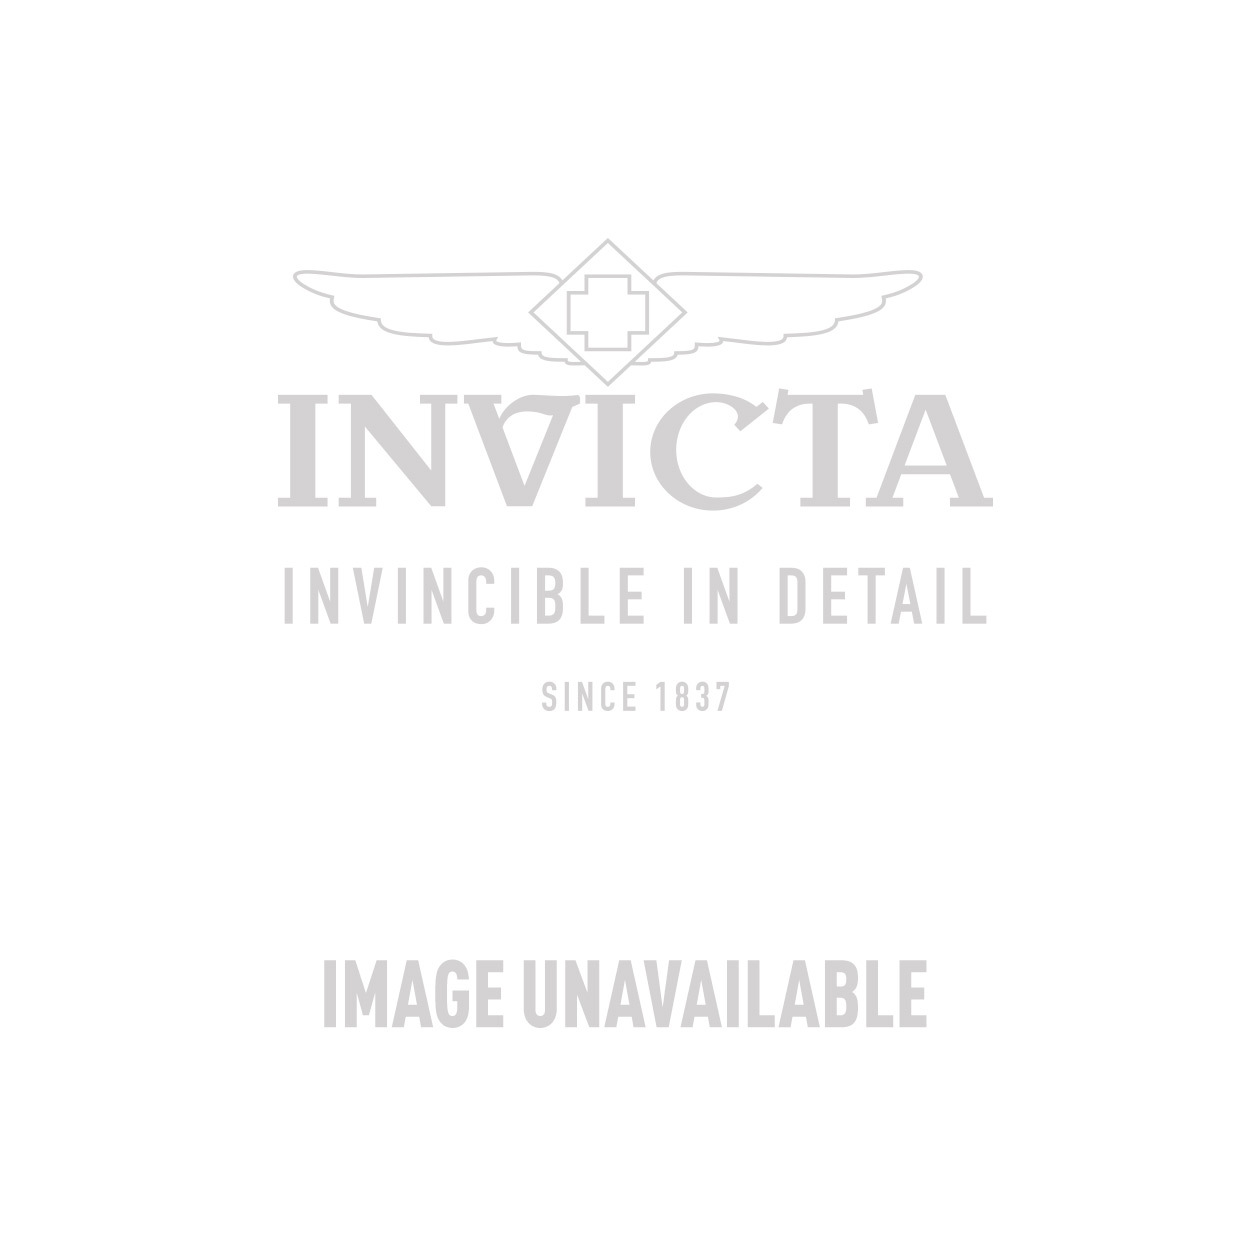 Invicta S1 Rally Quartz Watch - Stainless Steel case with Light Brown tone Leather band - Model 16018